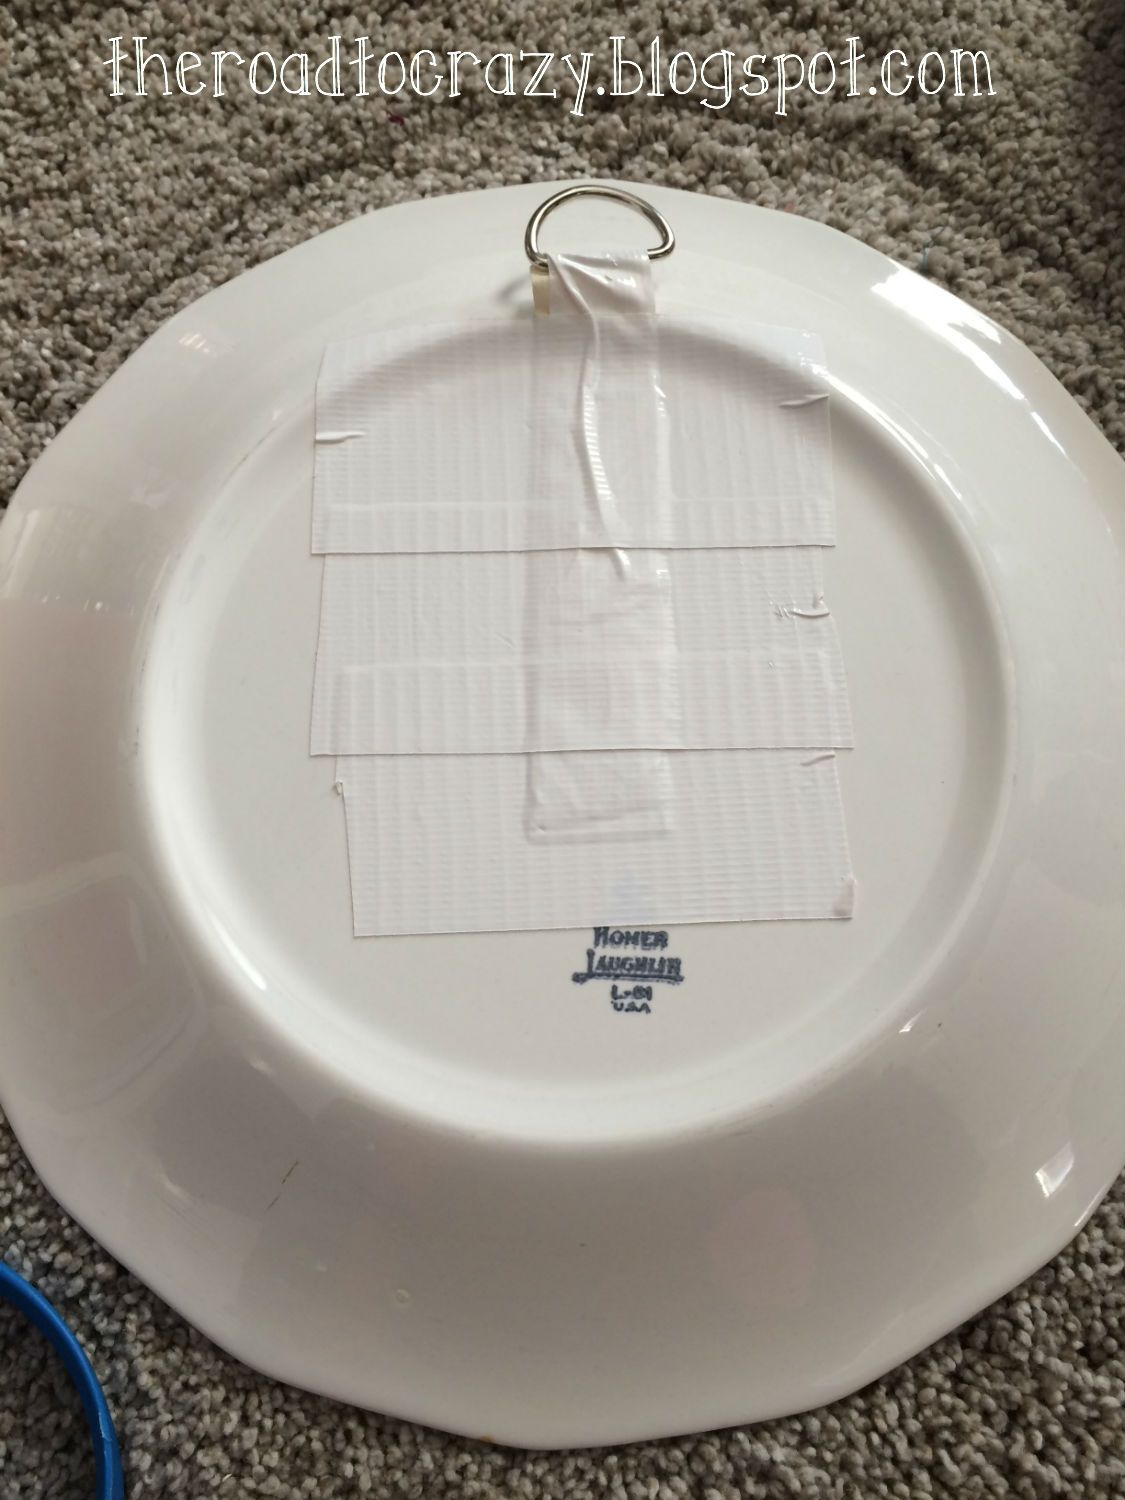 The Road to Crazy: DIY Plate Hangers | Plate hangers | Pinterest ...